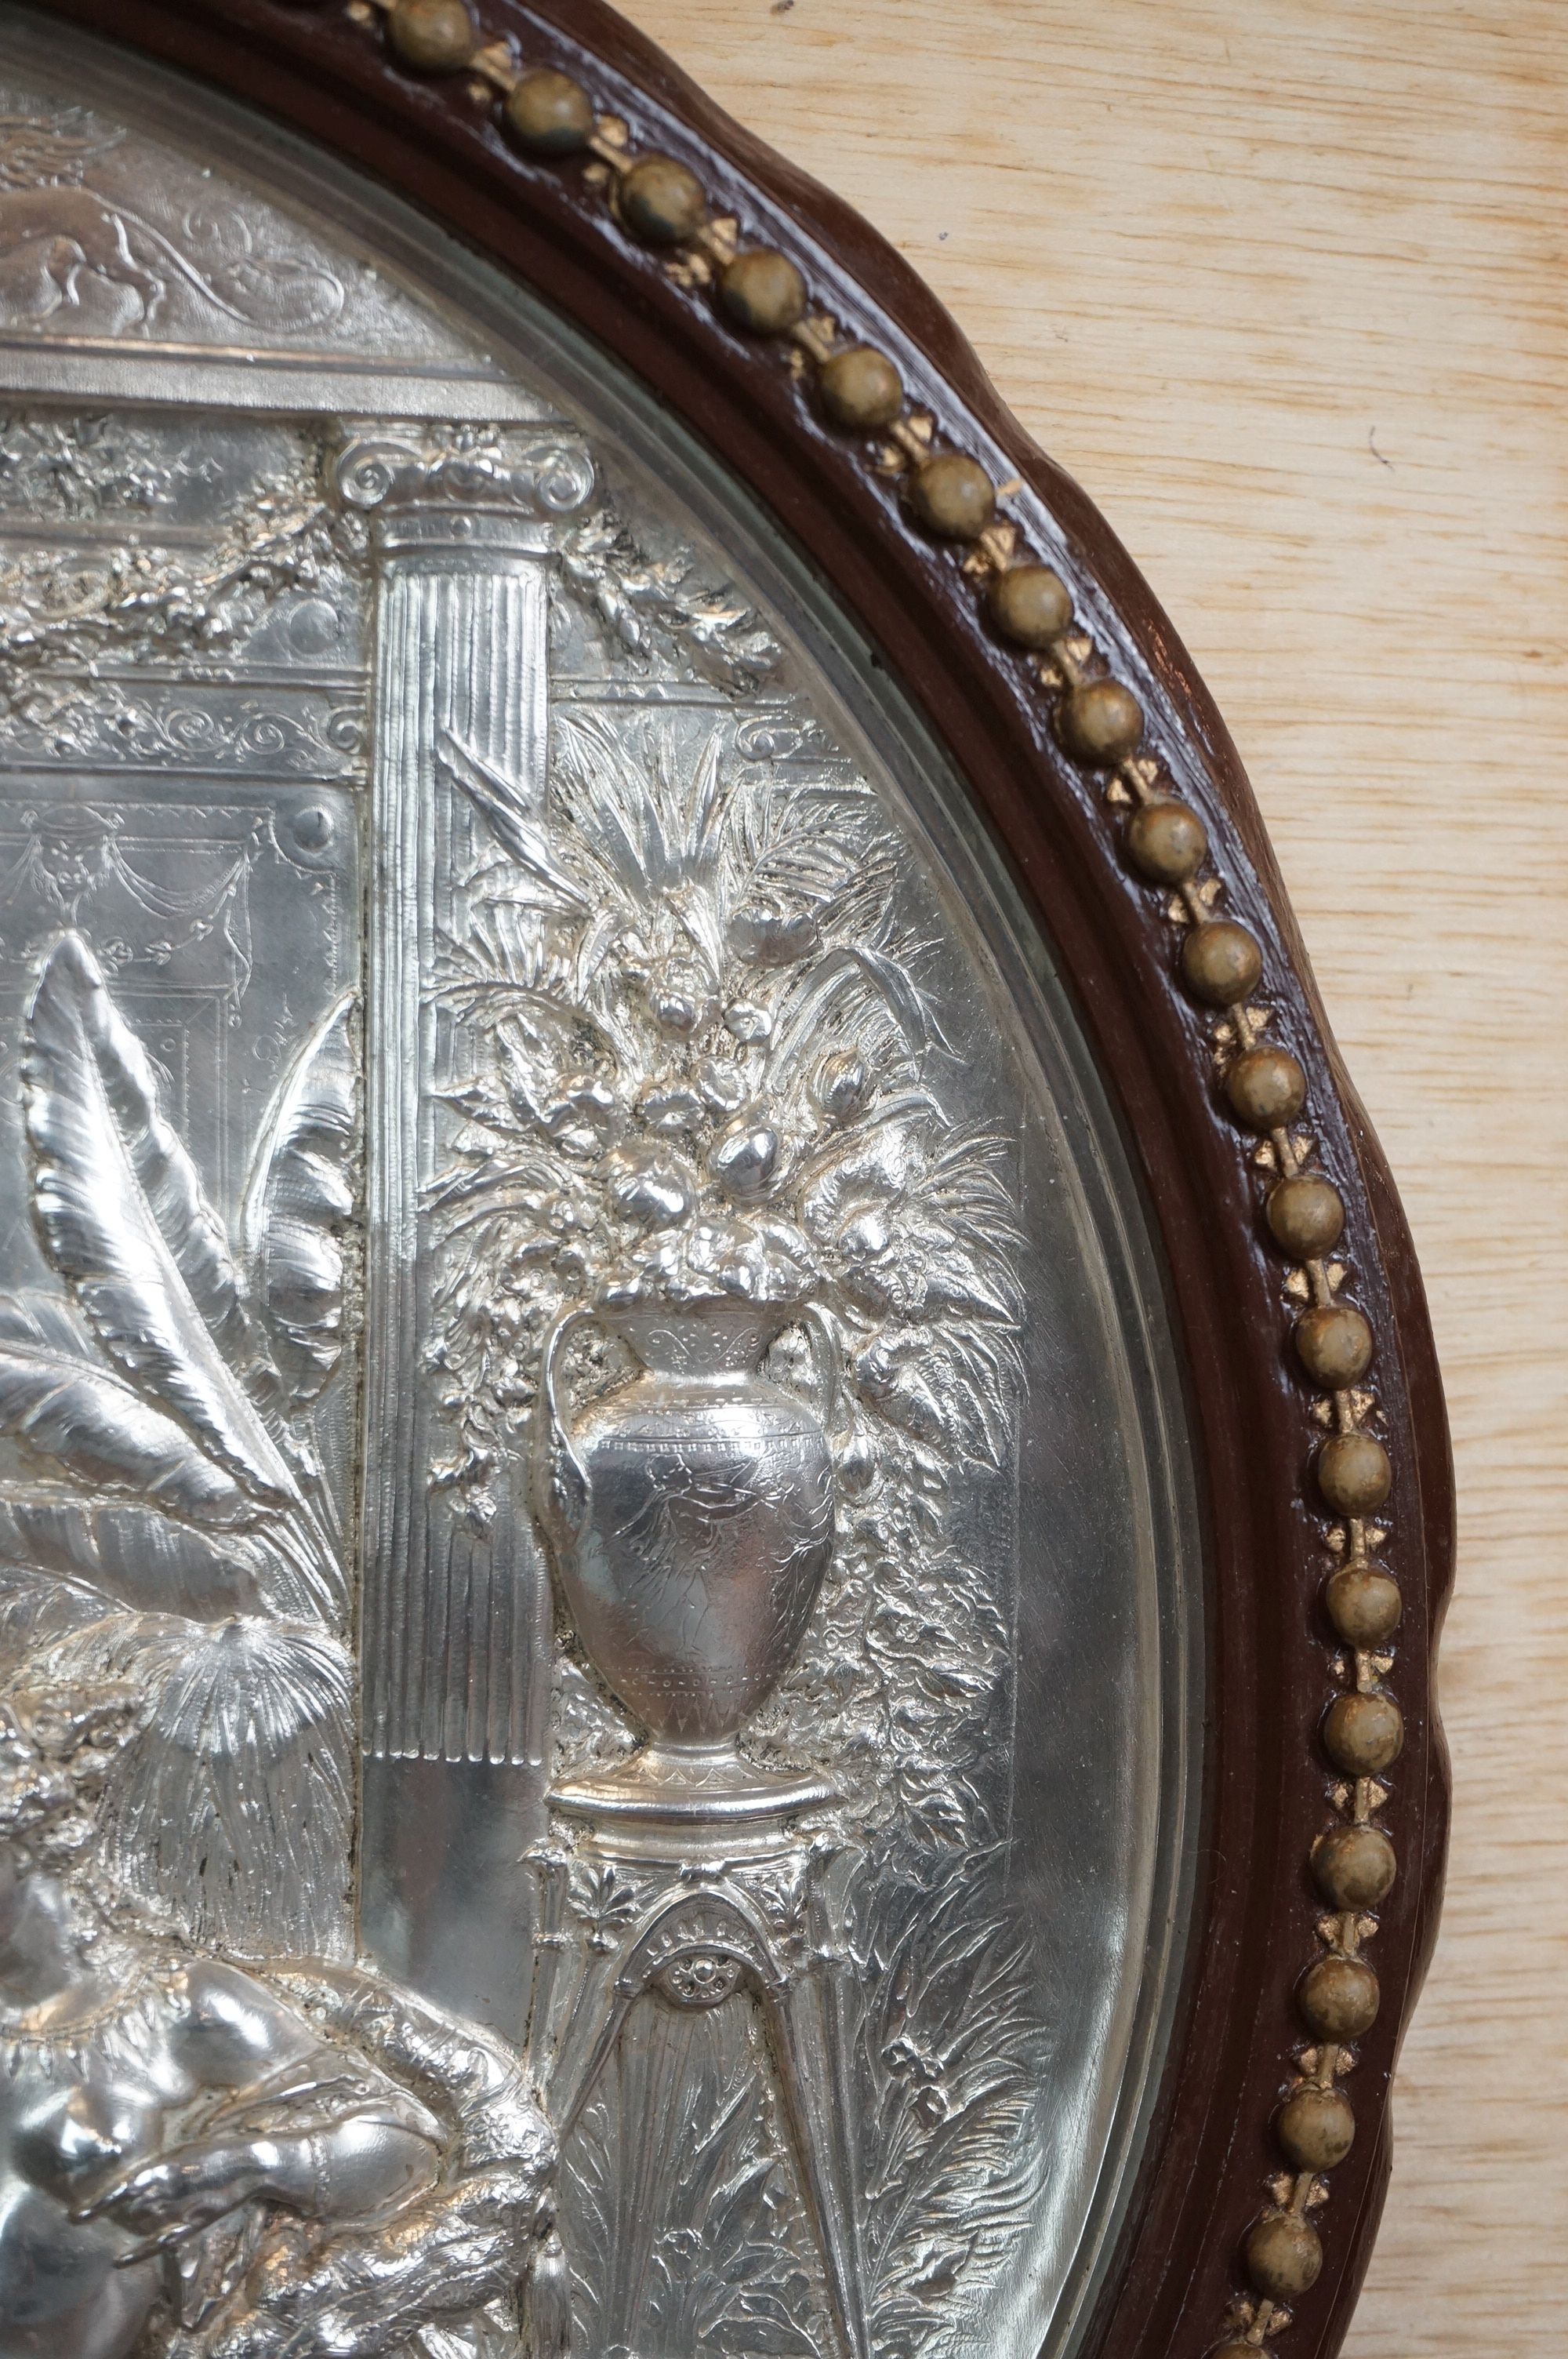 Elkington Silver Plated Circular Wall Plaque with embossed classical scene decoration, 32cms - Image 5 of 5